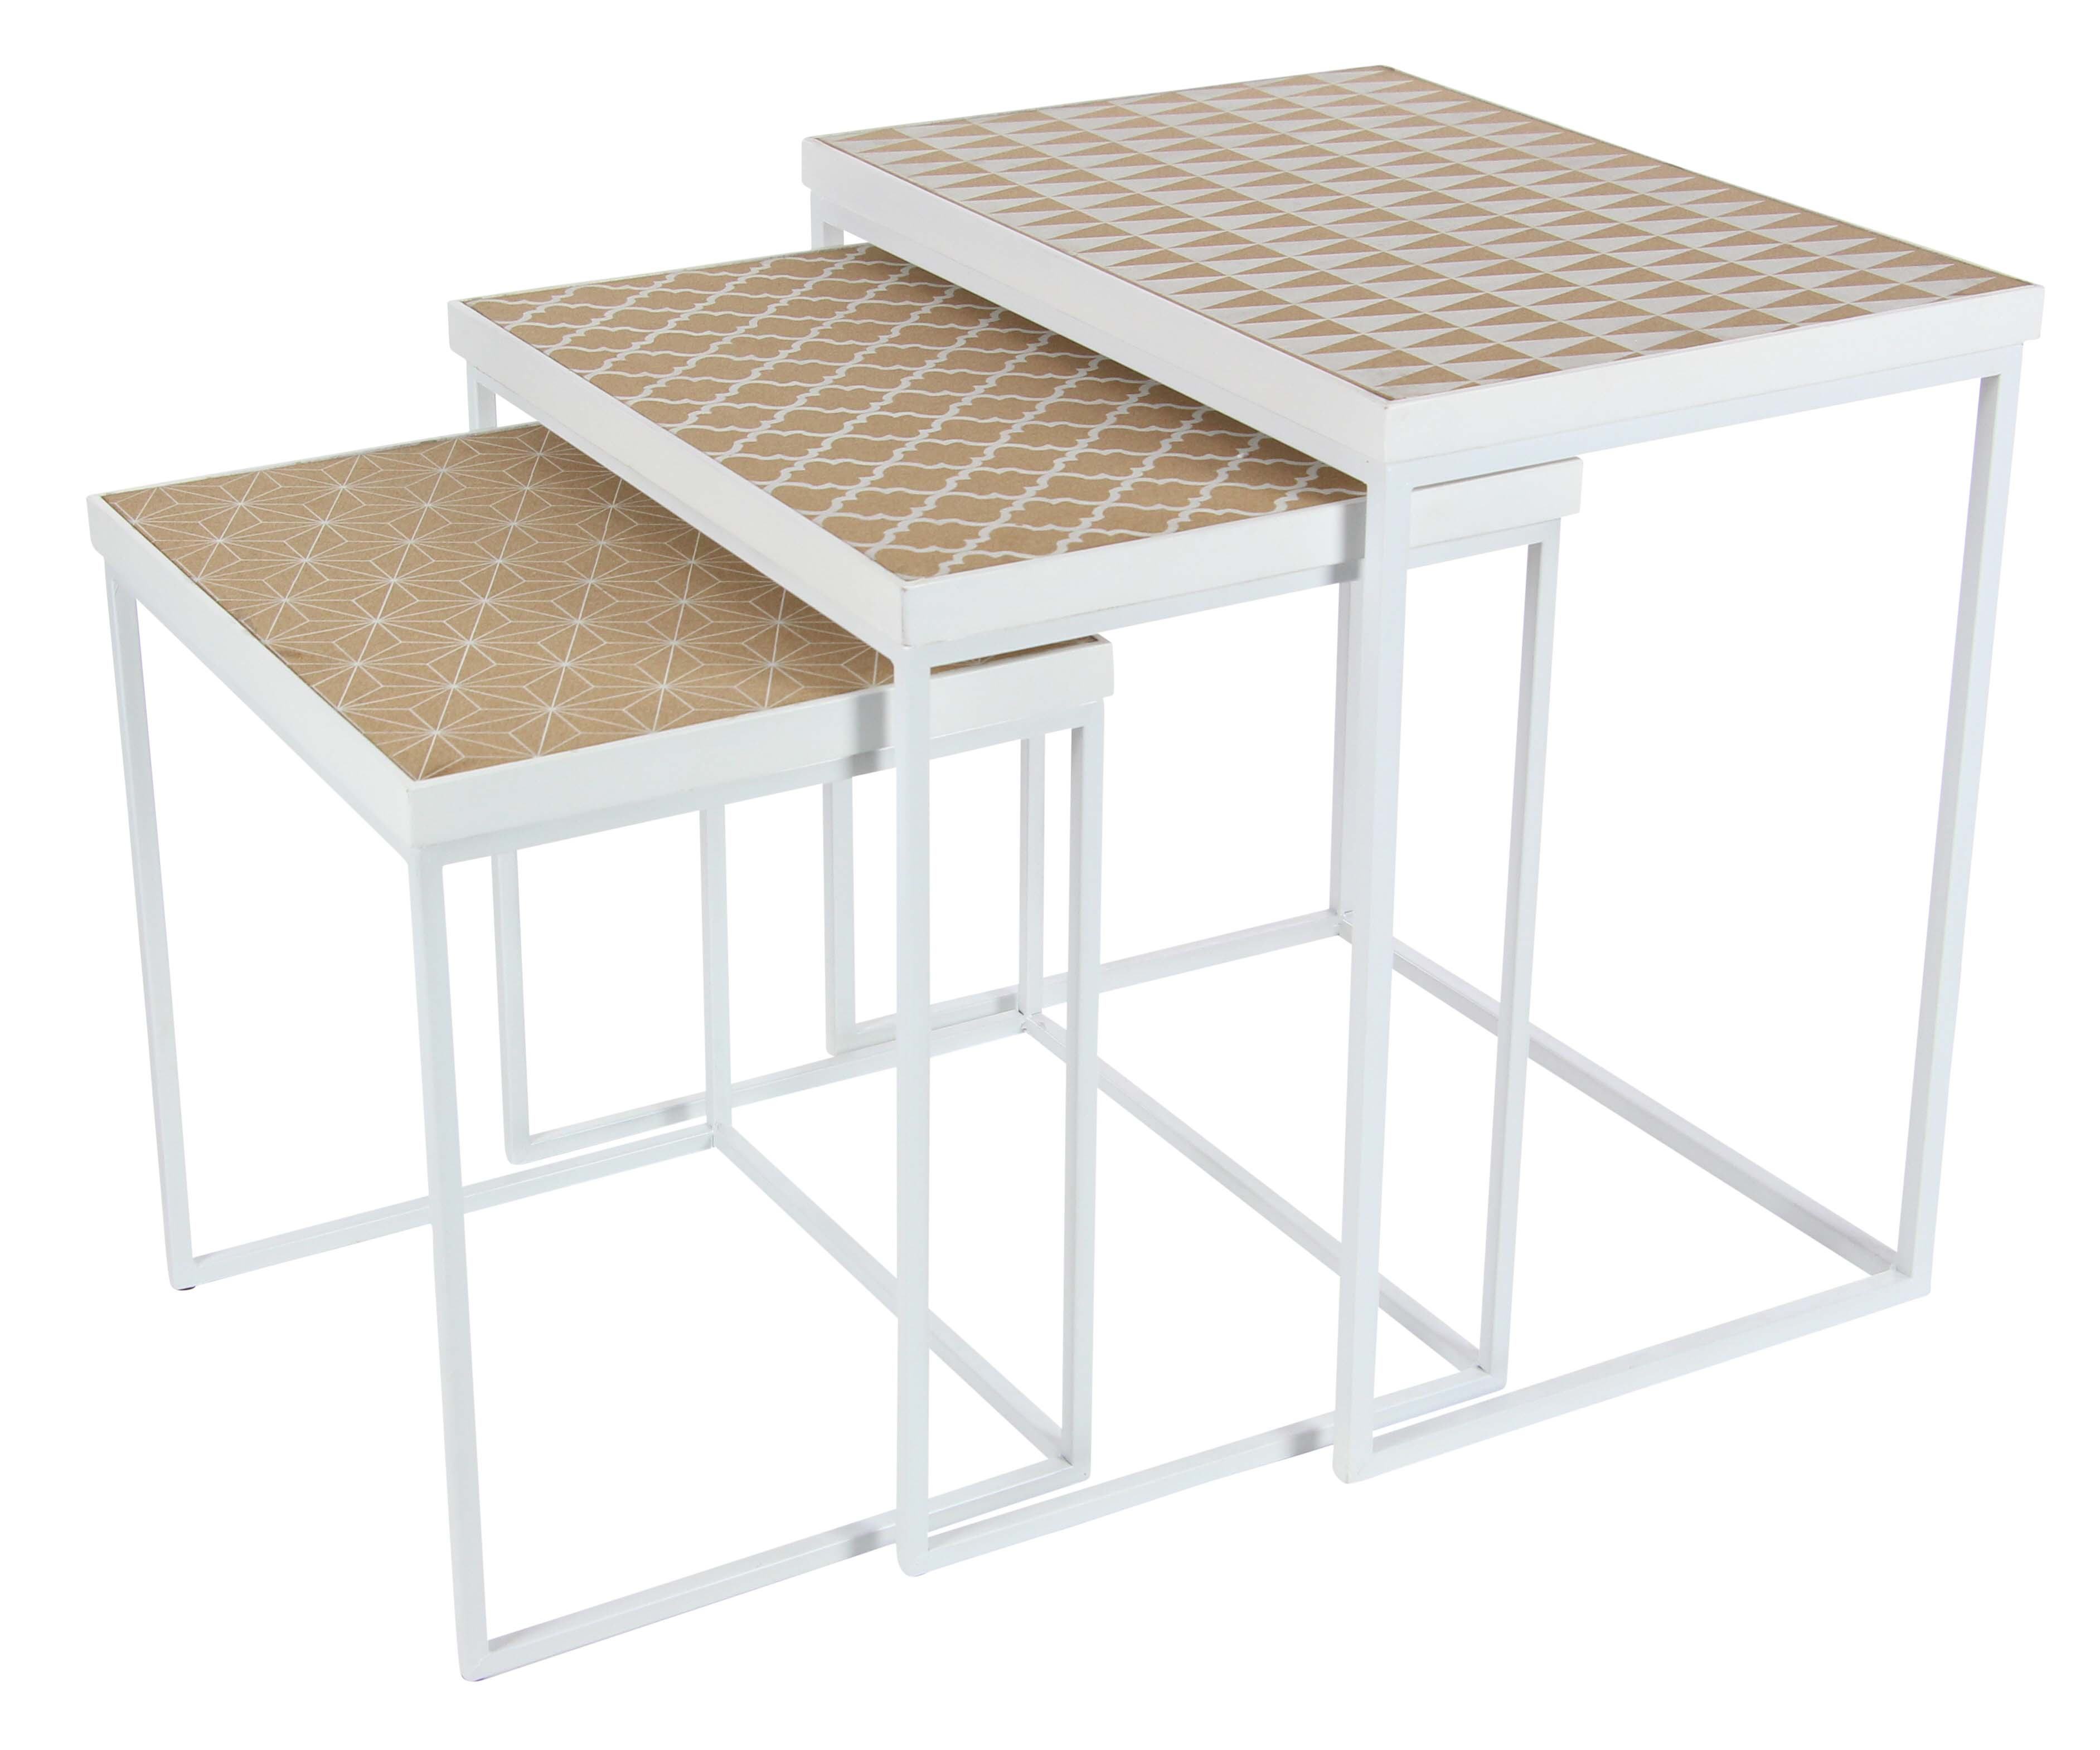 Decmode 18, 21, And 24 Inch Rectangular Nesting Tables With Lattice Pattern  Design